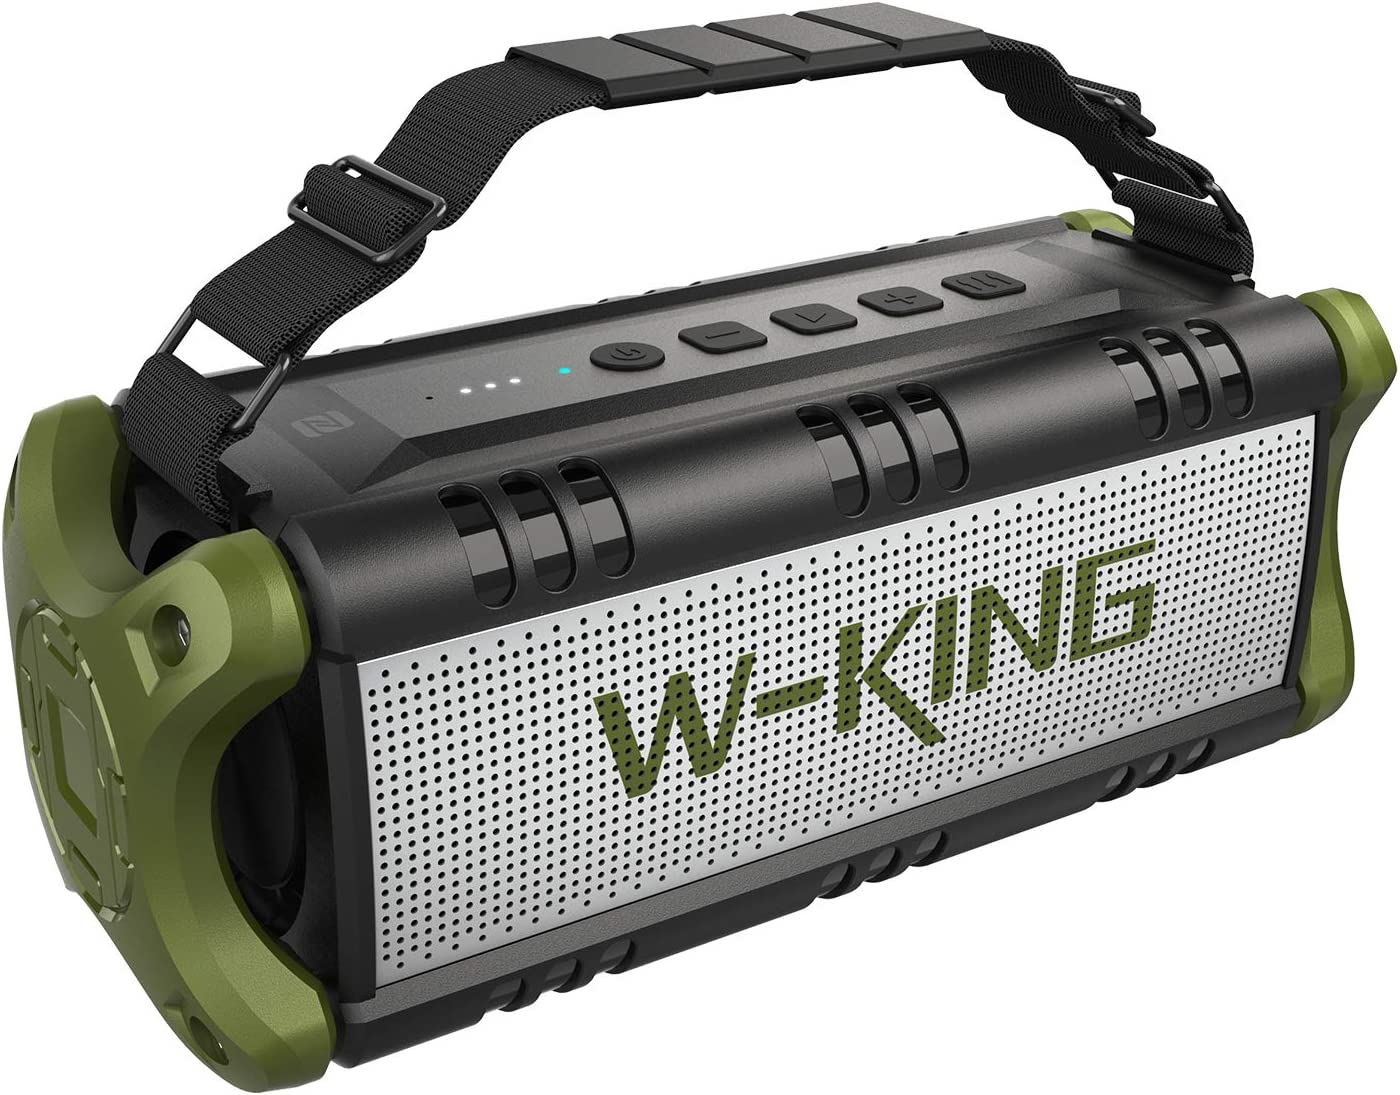 W-KING 50W Wireless Bluetooth Speakers & 8000mAh Battery Power Bank, Outdoor Portable Waterproof TWS Speaker, Powerful Rich Bass Loud Clear Stereo Sound for Home/Party/Outdoor/Travel